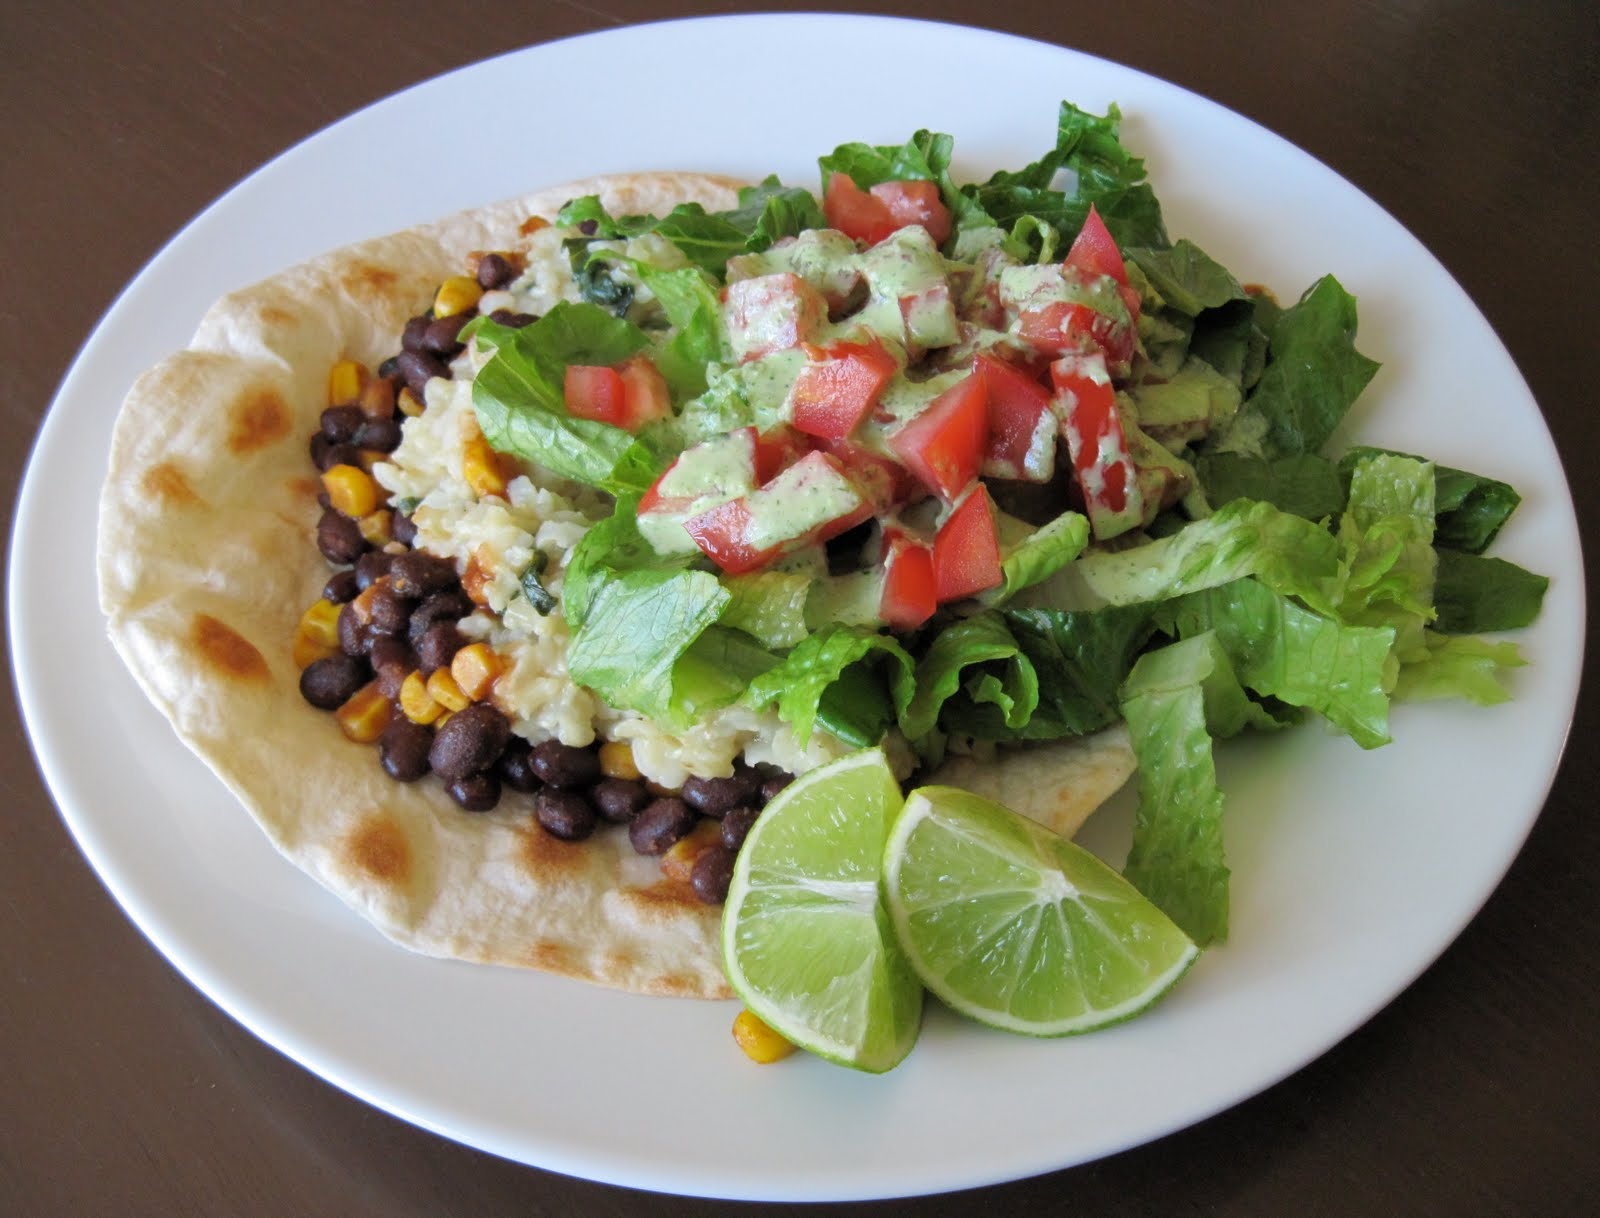 ... : Cafe Rio Inspired Tostada With Creamy Tomatillo-Cilantro Dressing